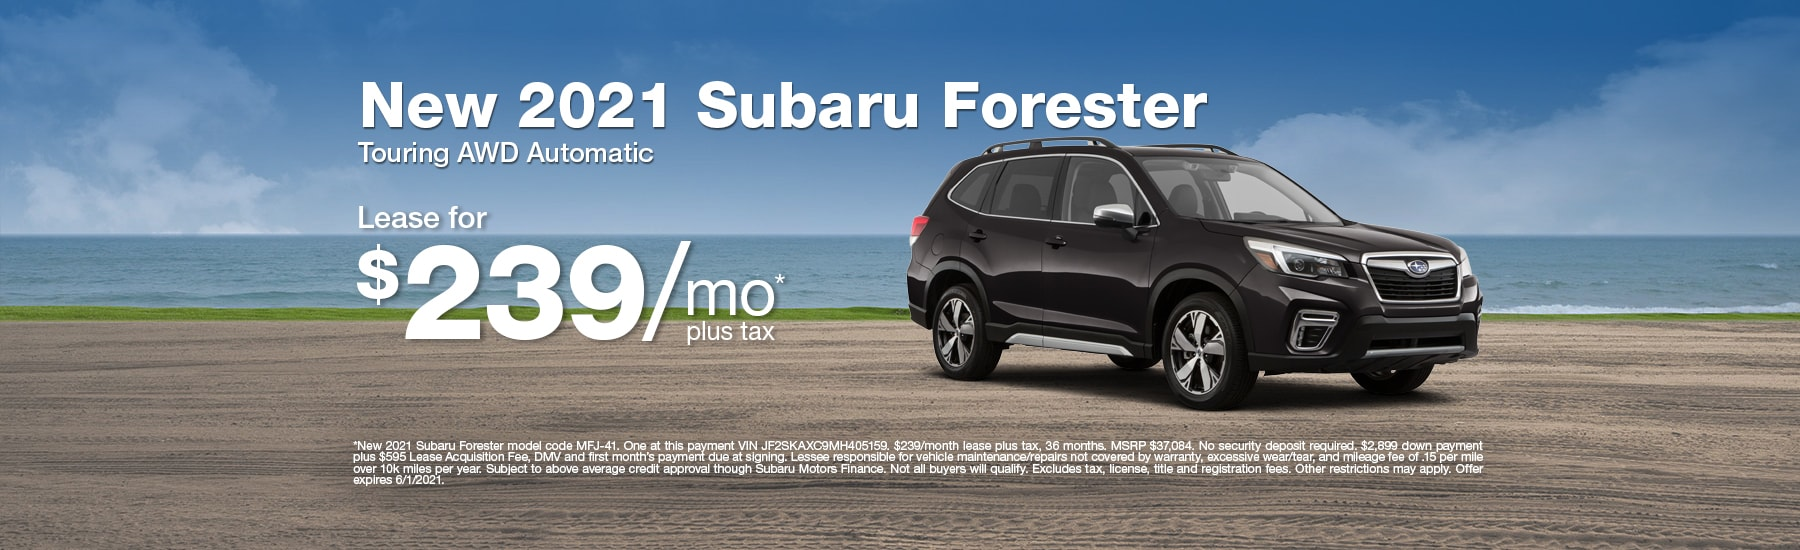 Special Lease offer on new Forester at Timmons Subaru of Long Beach